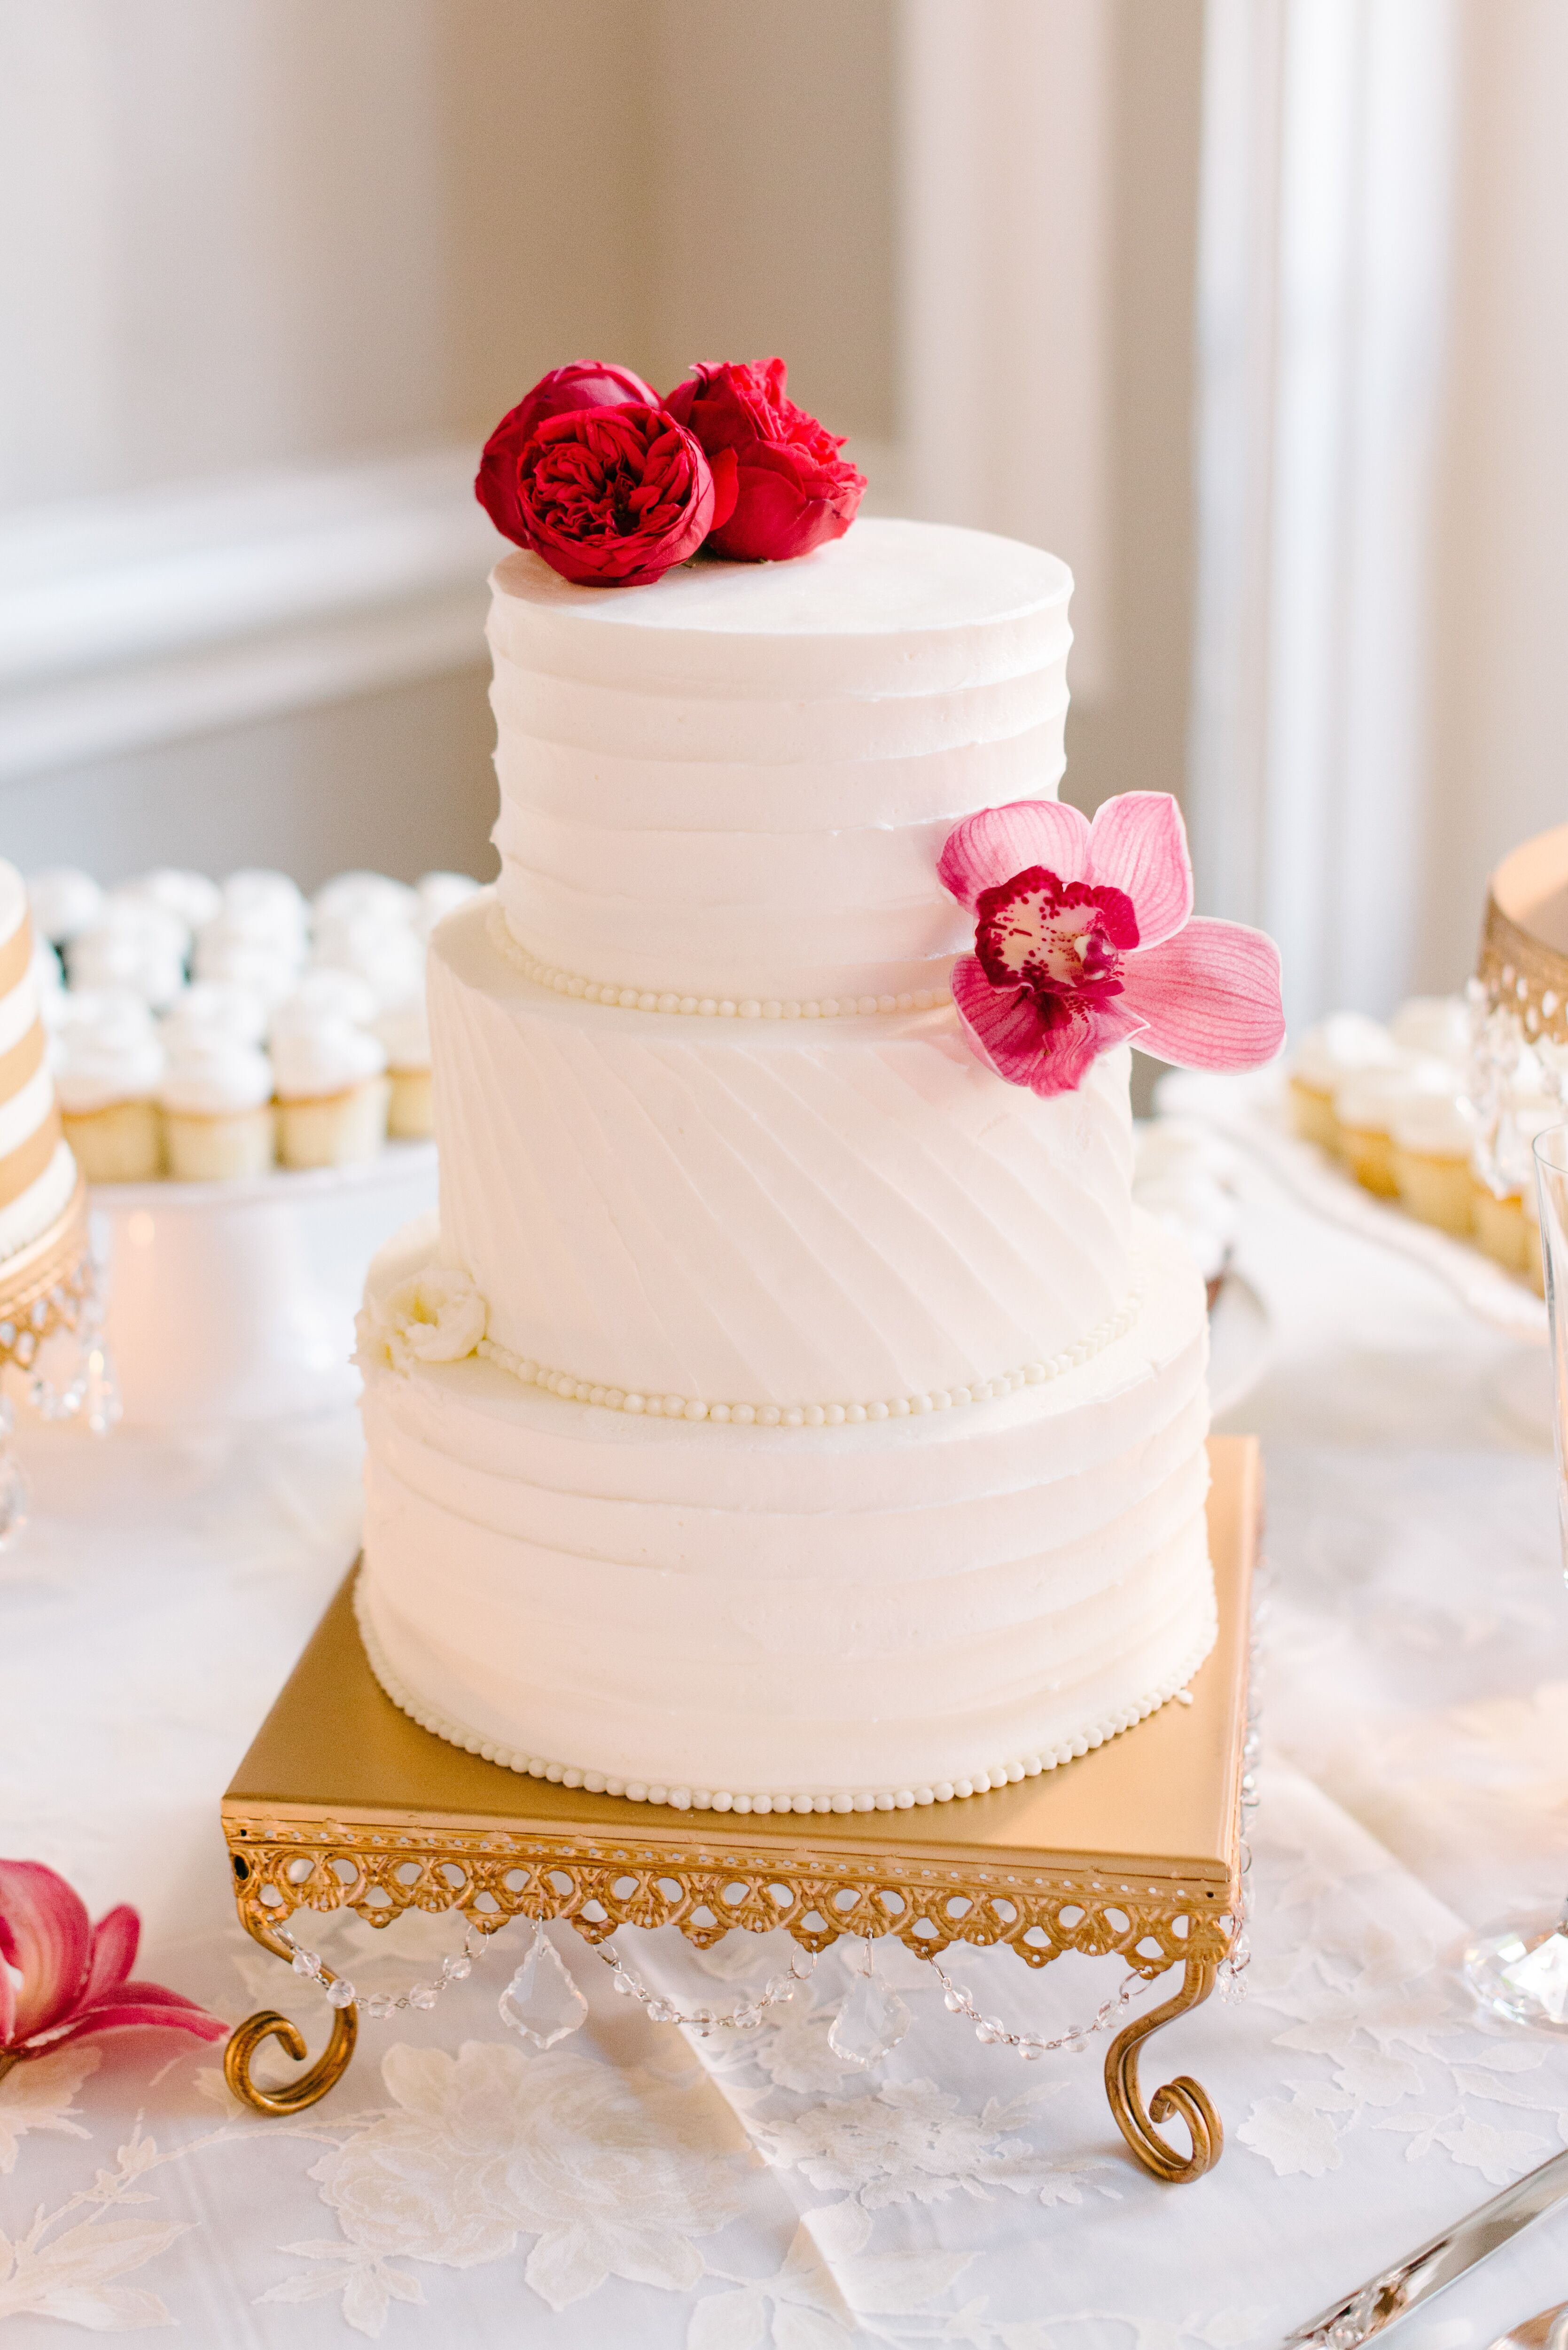 Polished Buttercream Cake with Fresh Flower Accents